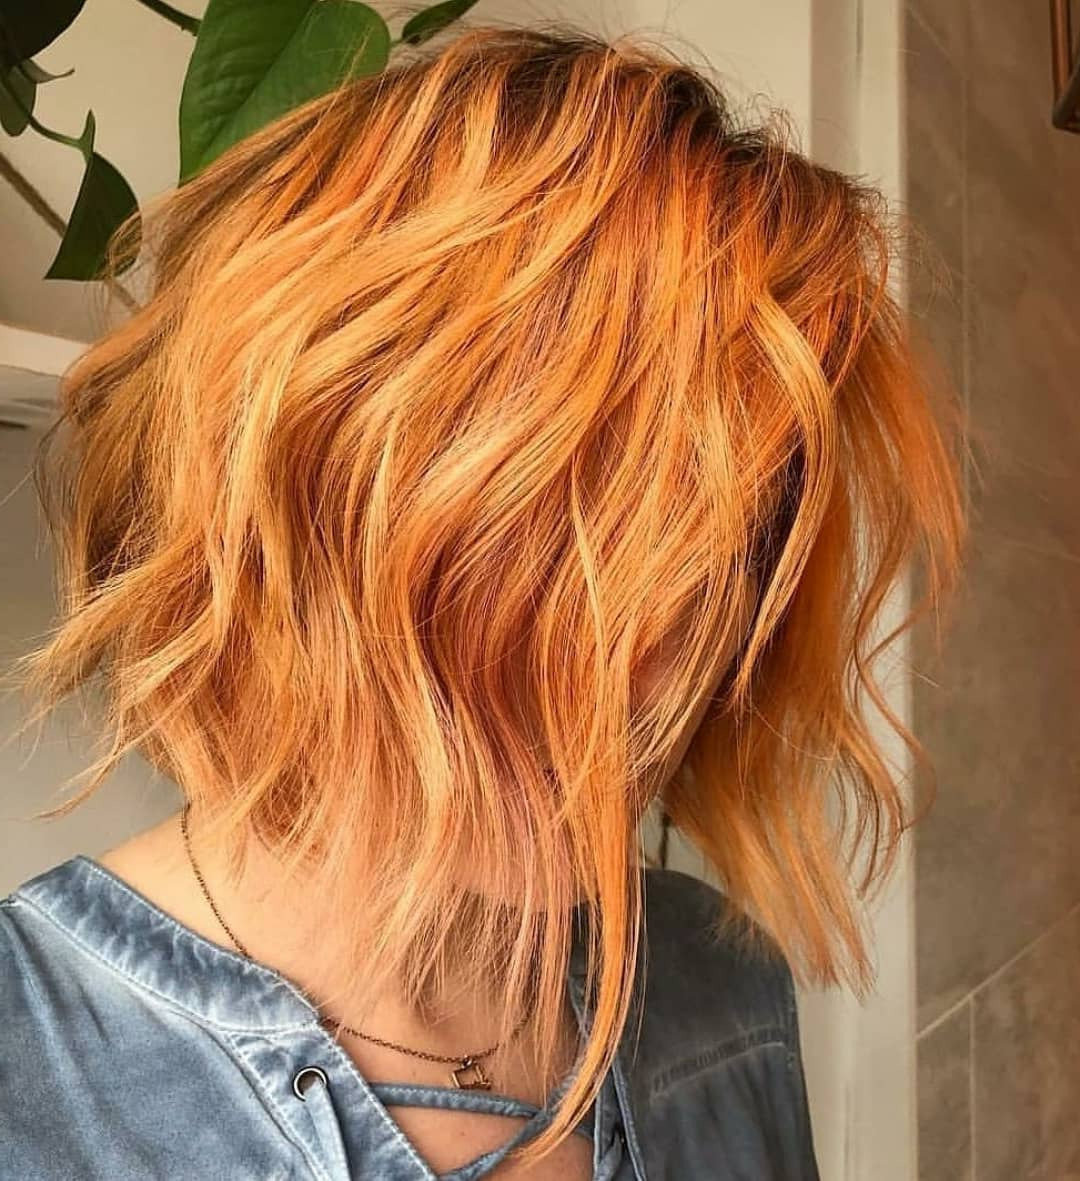 Most Popular Thick Feathered Blonde Lob Hairstyles Within 10 Trendy Choppy Lob Haircuts For Women, Best Medium Hair (View 9 of 20)